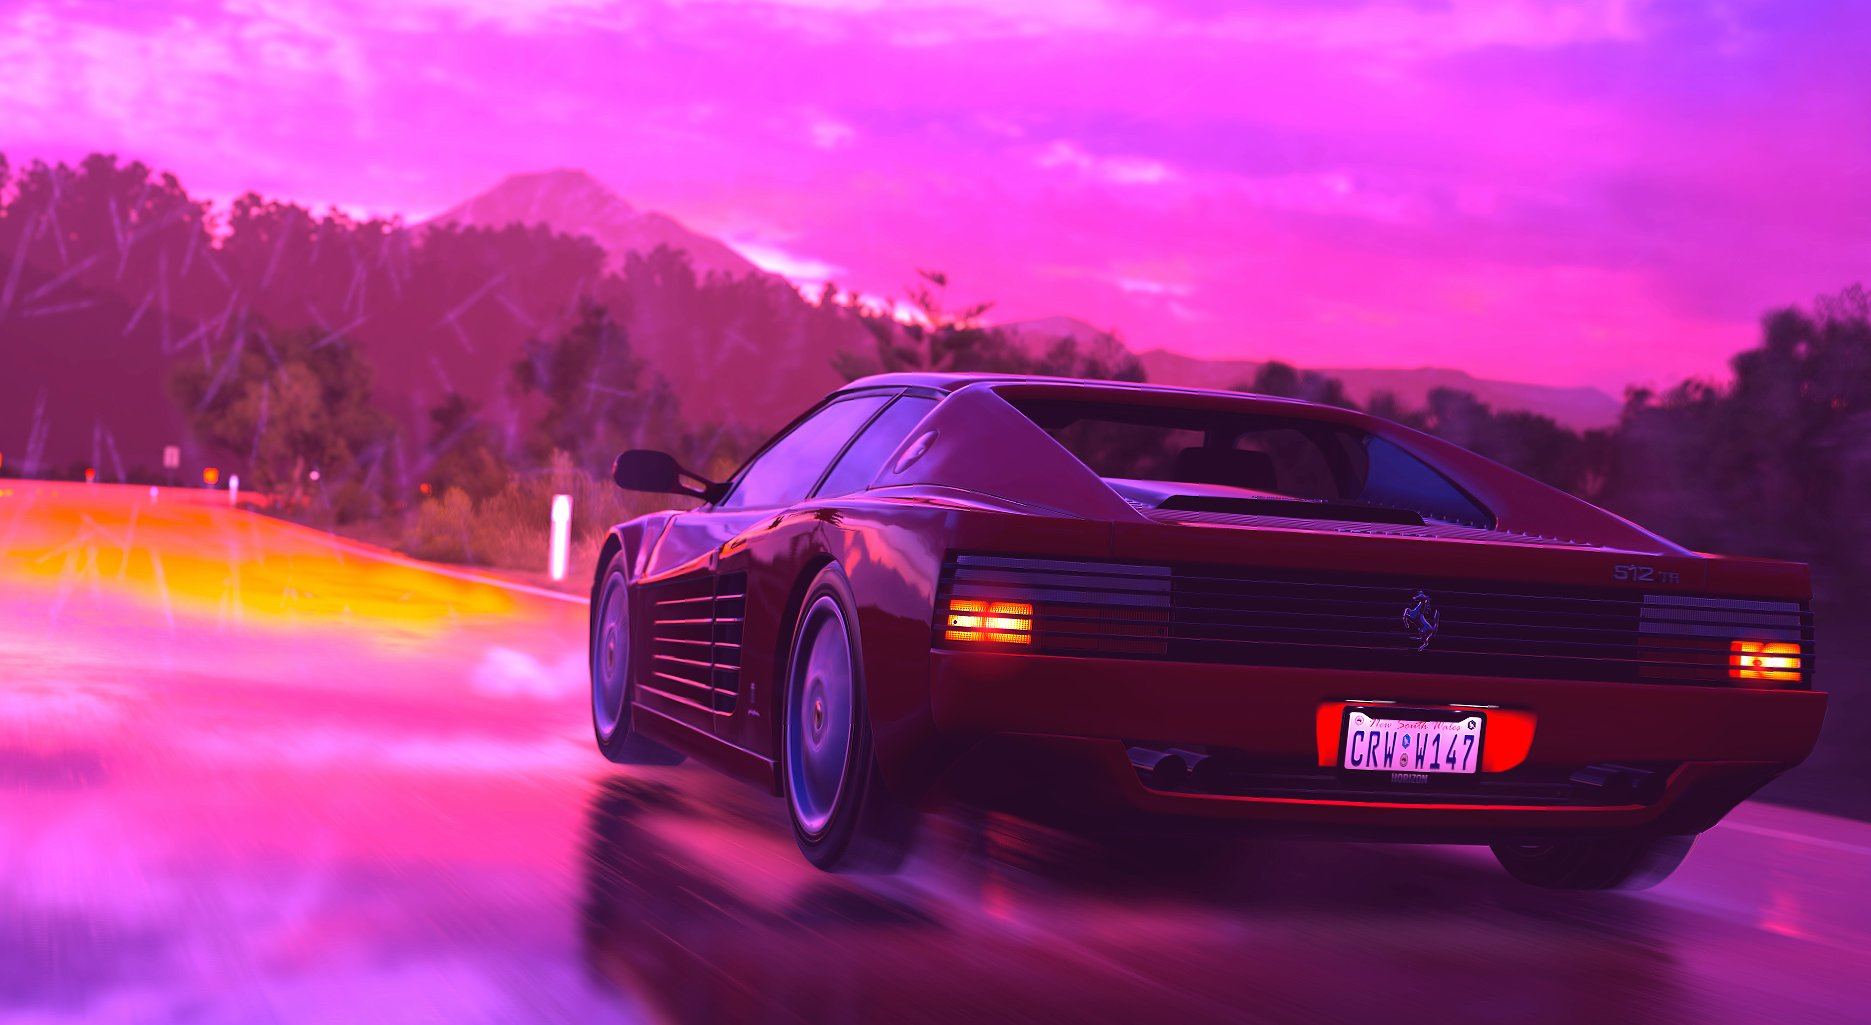 Retro Wave wallpapers HD quality